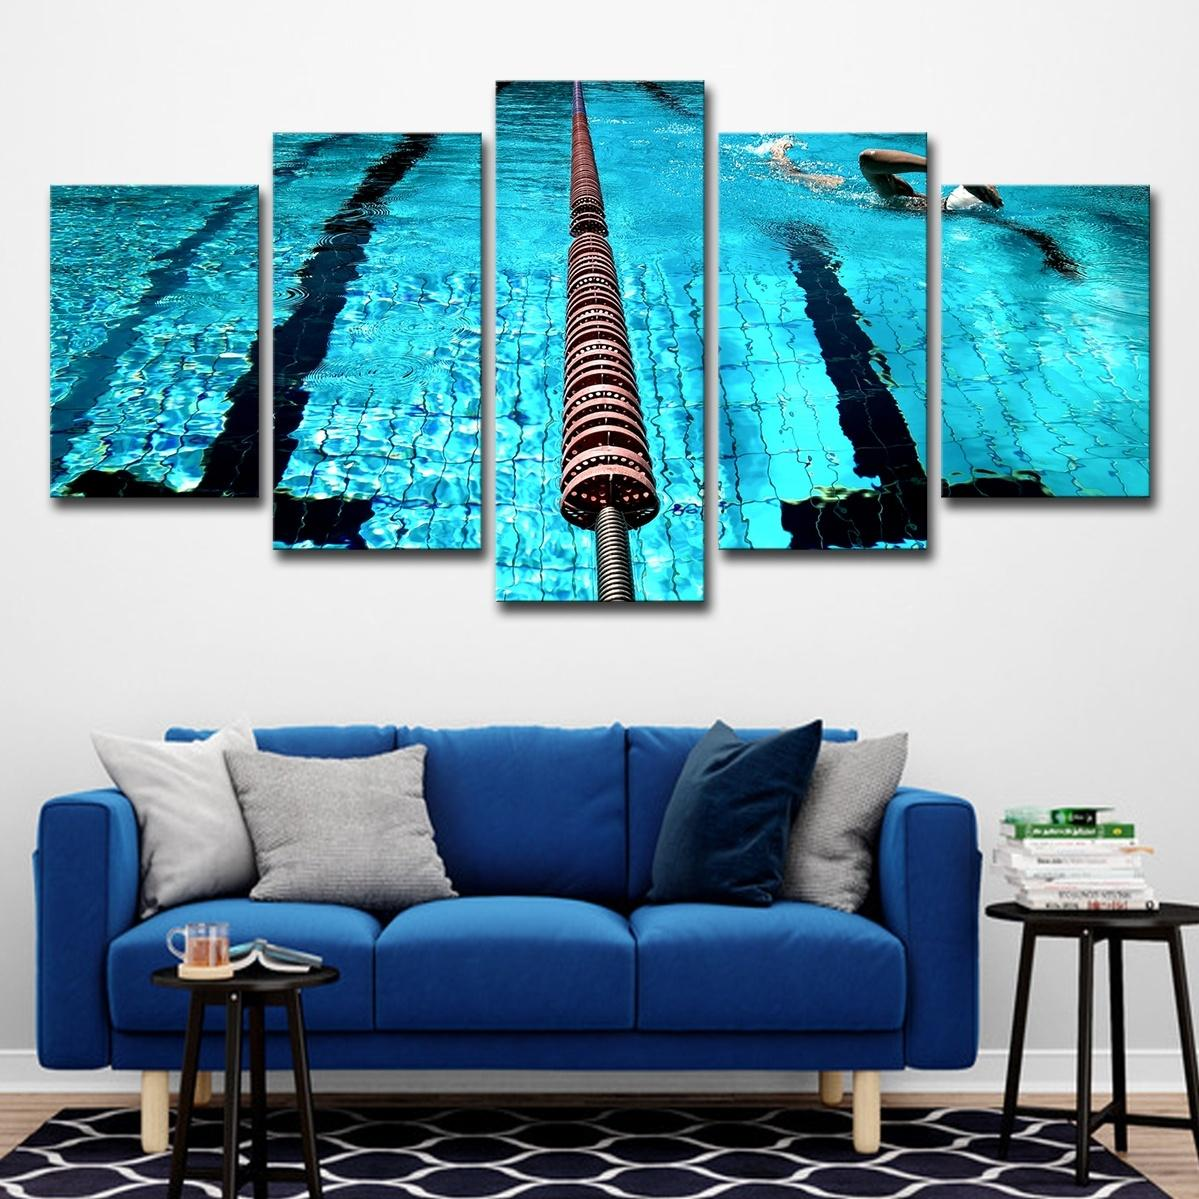 (Only Canvas No Frame) 5Pcs Blue Swimming Pool Landscape Oil Painting  Poster Wall Art HD Print Canvas Painting Fashion Hanging Pictures